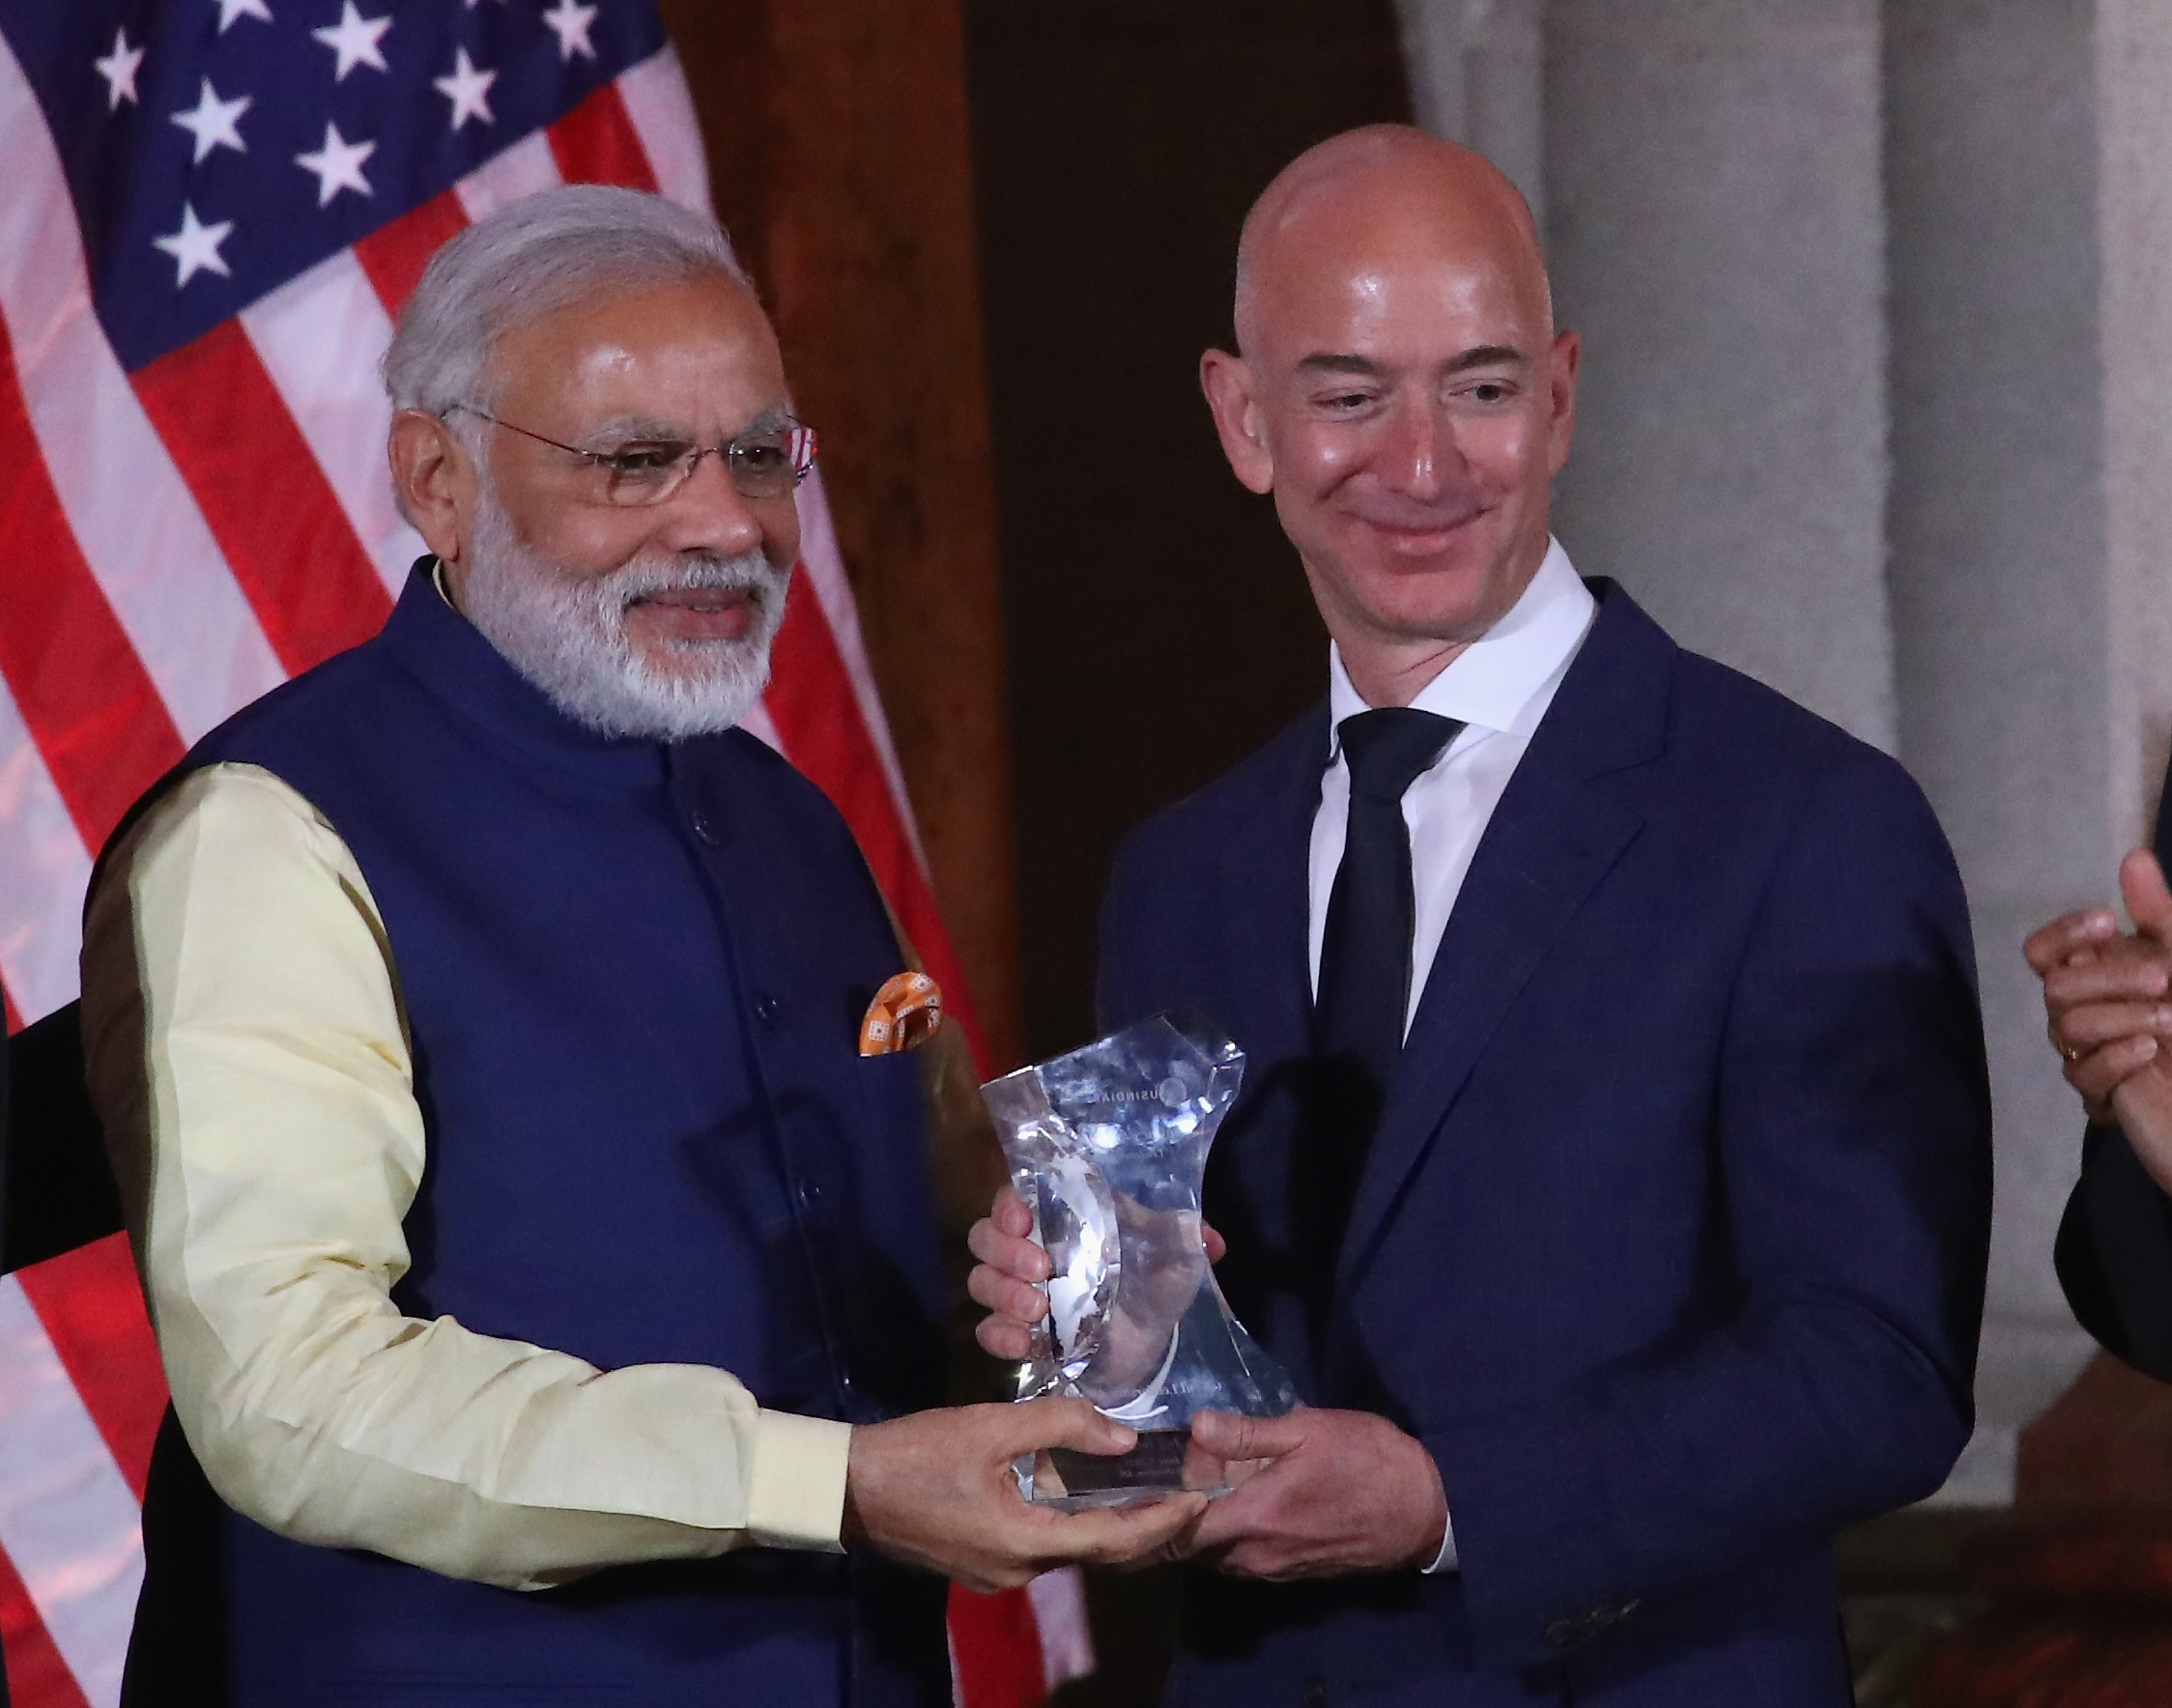 Amazon CEO Jeff Bezos, right, is presented with the 2016 USIBC Global Leadership Award by Indian Prime Minister Narendra Modi.